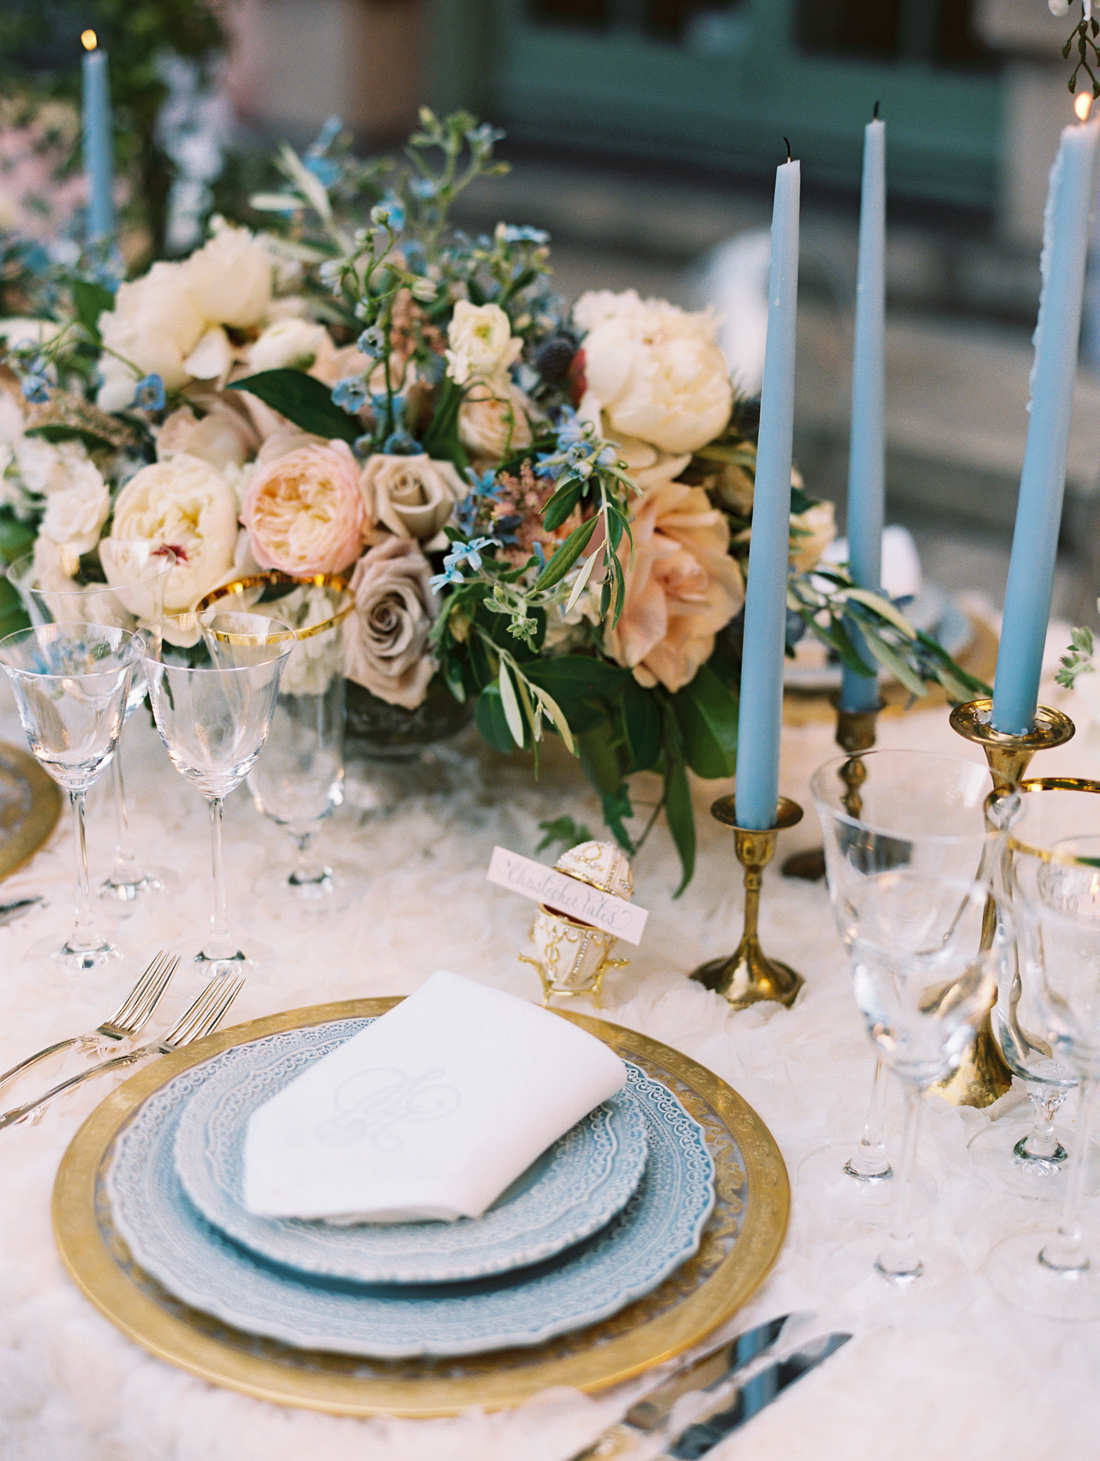 baby blue and gold themed place settings with floral centerpieces